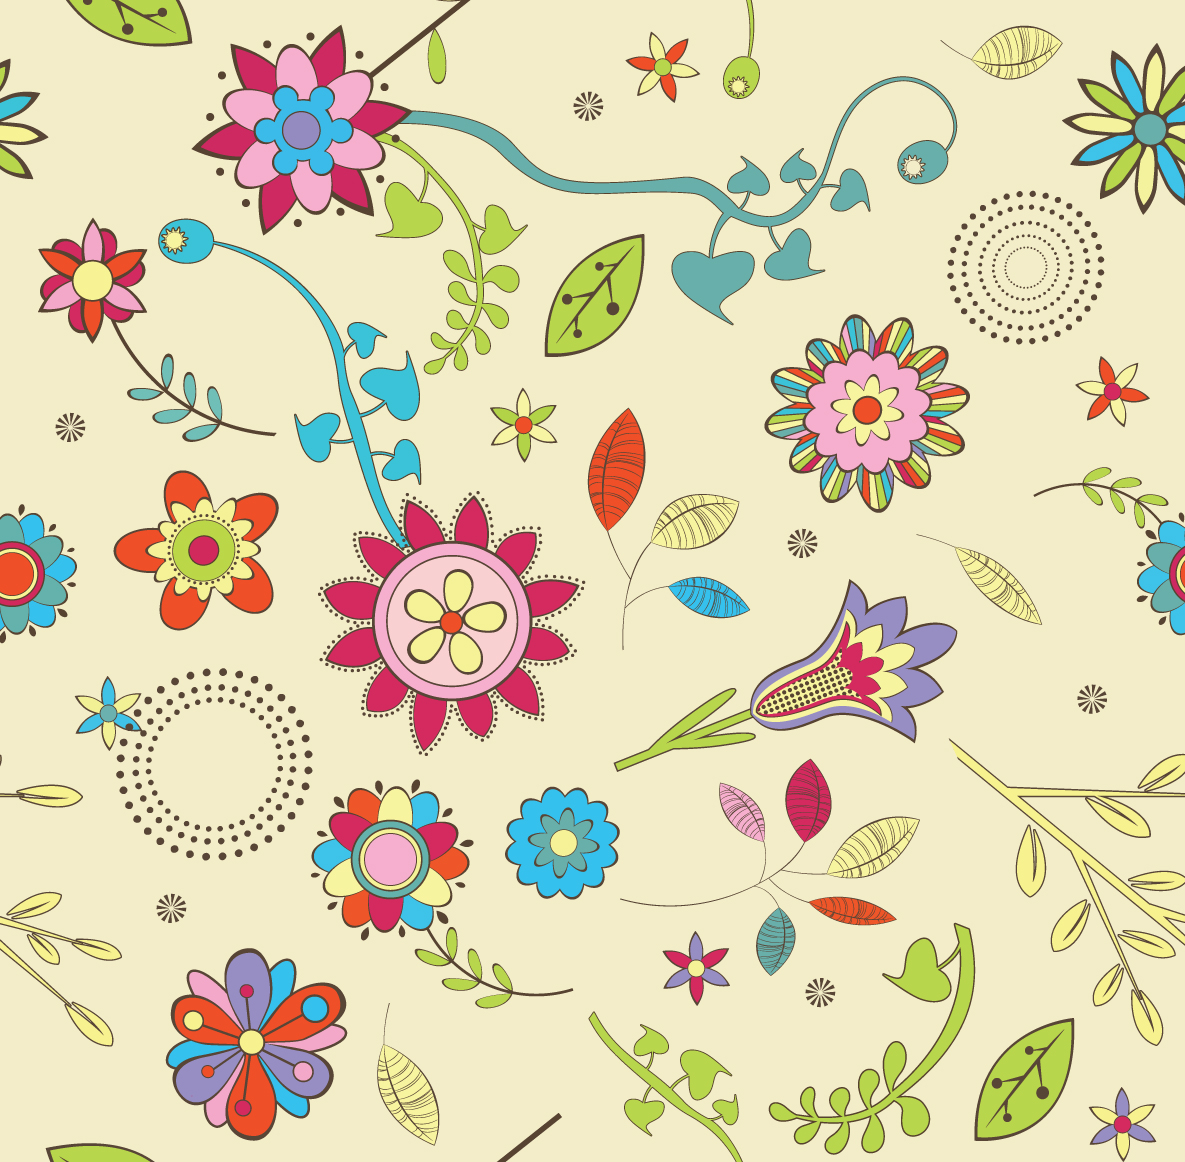 Free Abstract Floral Wallpaper Vector Pattern Wallpaper